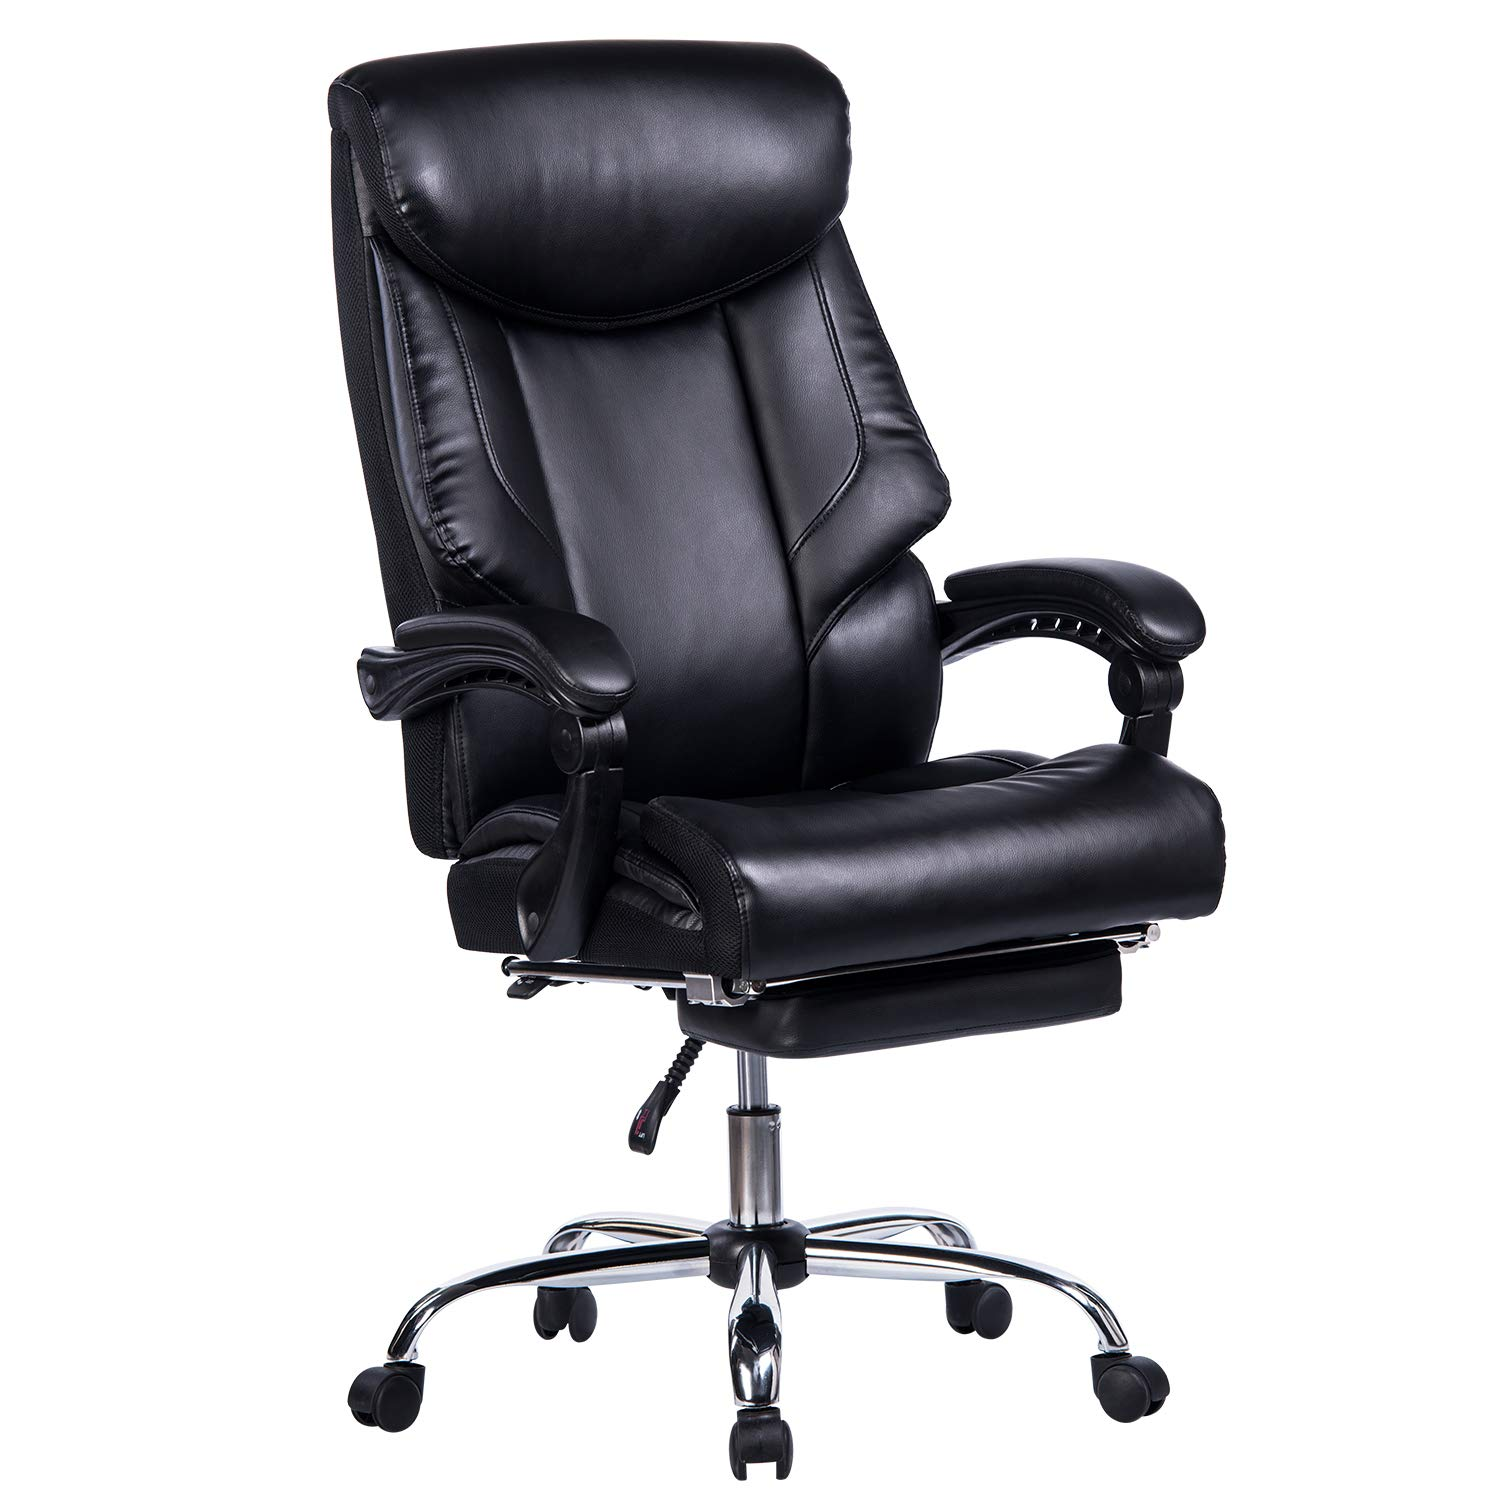 VANBOW Reclining Office Chair - High Back Memory Foam Bonded Leather Executive Chair with Retractable Footrest, Adjustable Angle Recline Lock System, Thick Padding Ergonomic Design